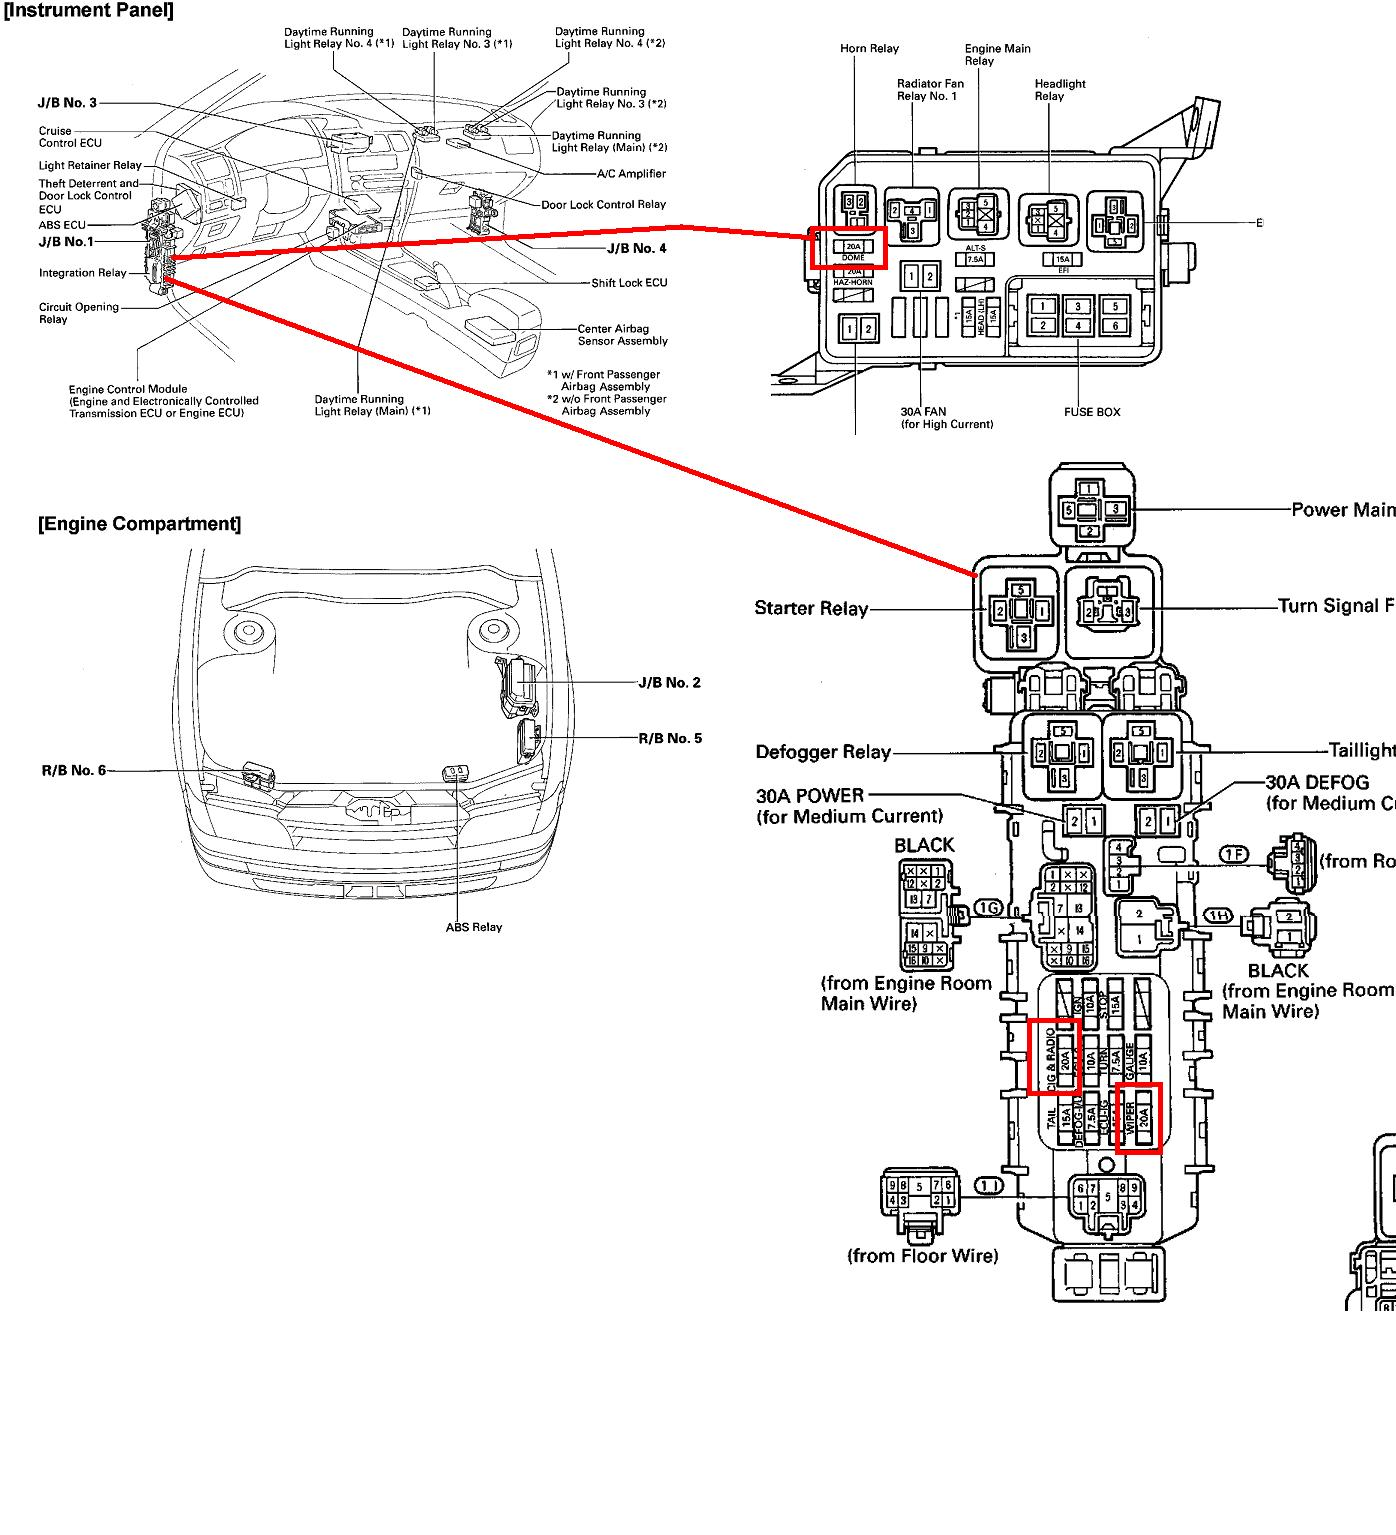 1998 toyota corolla fuse box diagram wiring library 95 toyota corolla fuel filter 2009 toyota corolla [ 1396 x 1535 Pixel ]